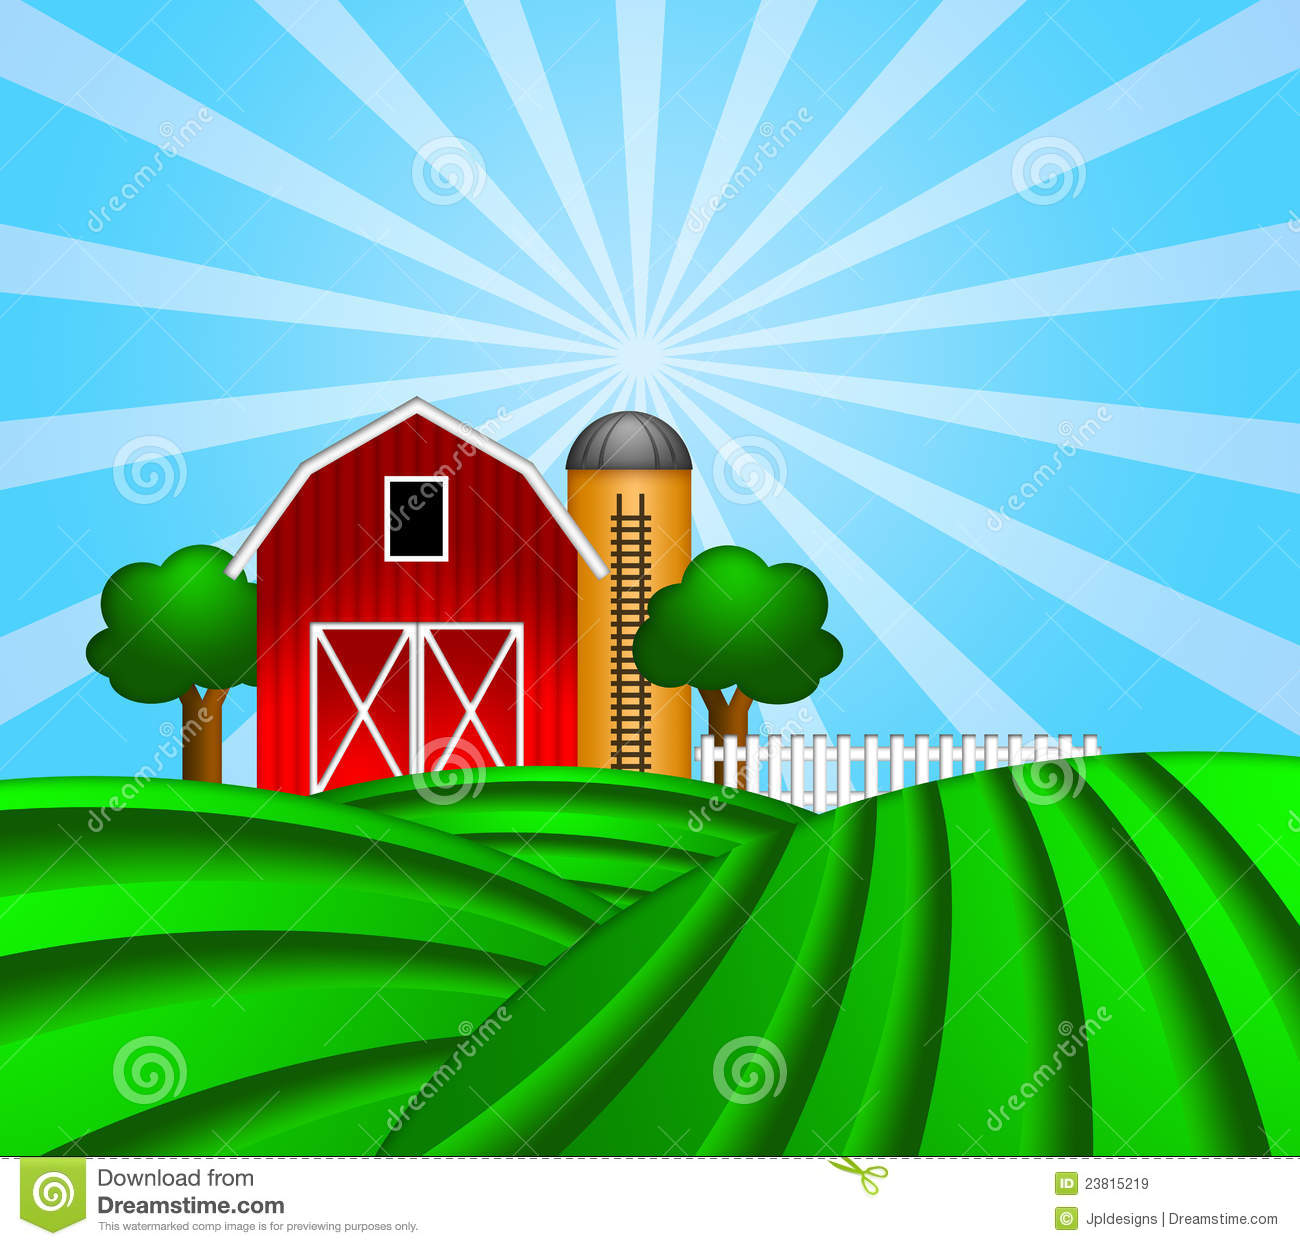 Red Barn With Grain Silo On Green Pasture